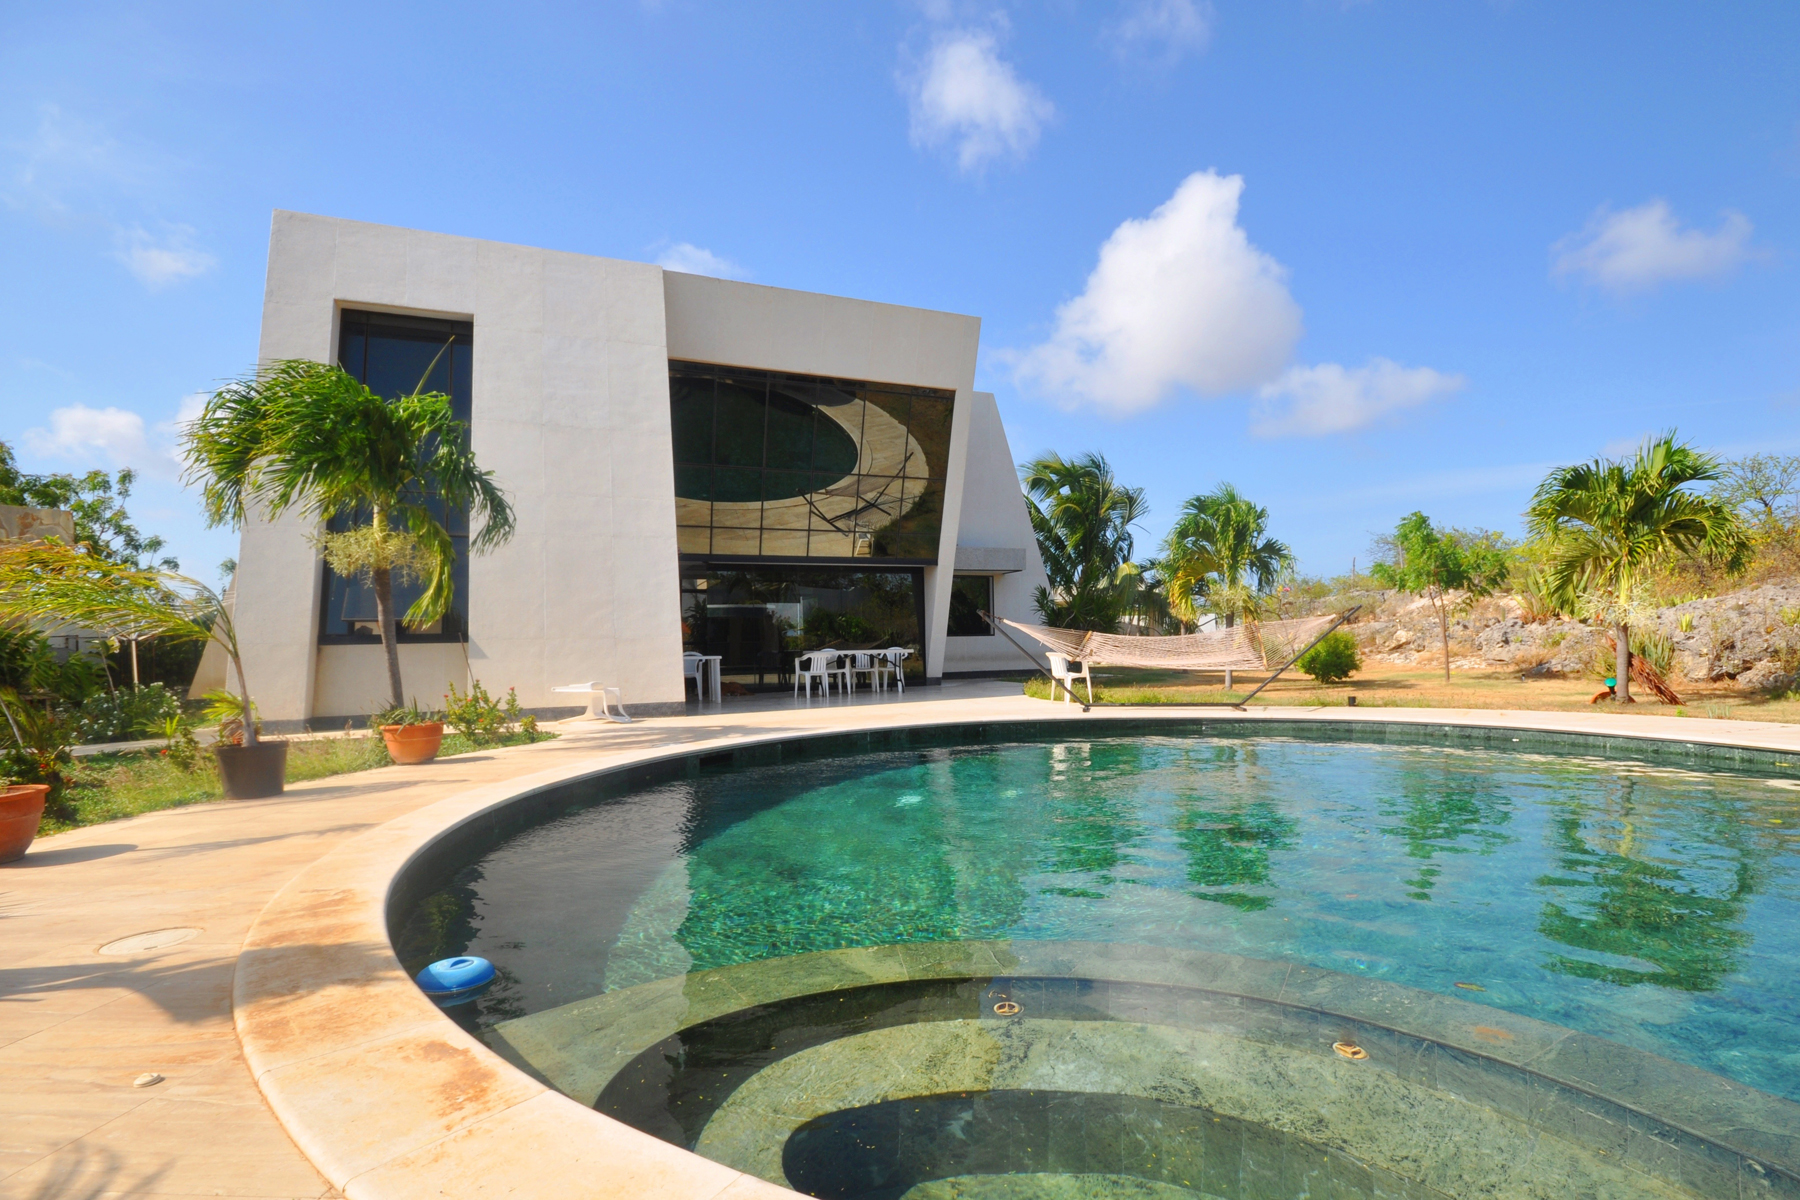 Single Family Home for Sale at Modern designed Portugal Villa Other Cities In Bonaire, Cities In Bonaire Bonaire